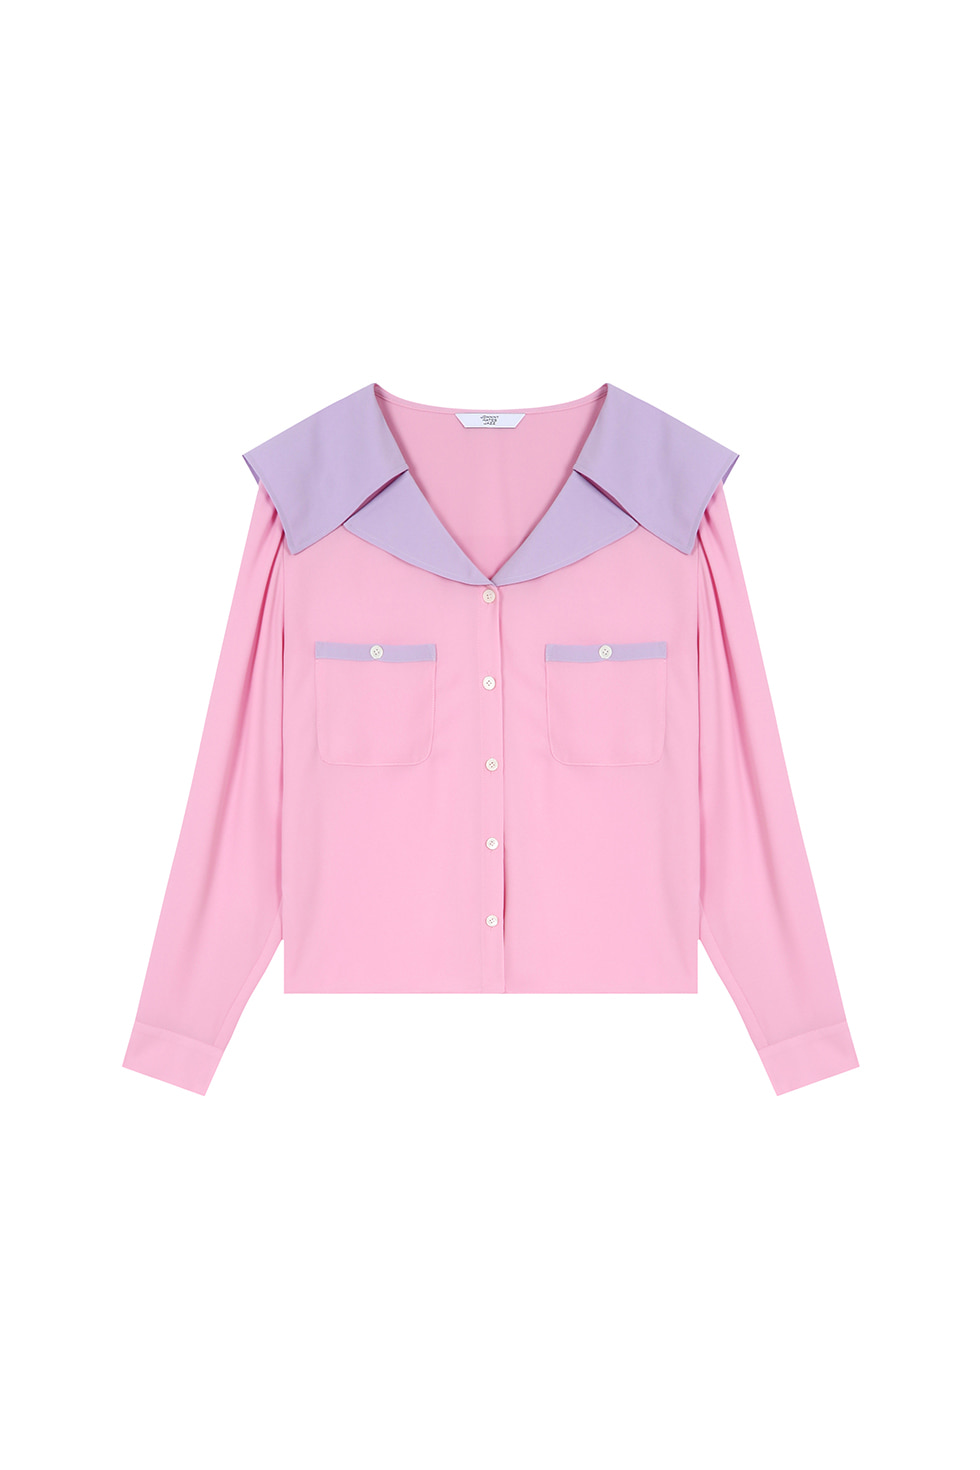 WIDE COLLAR BLOUSE - PINK